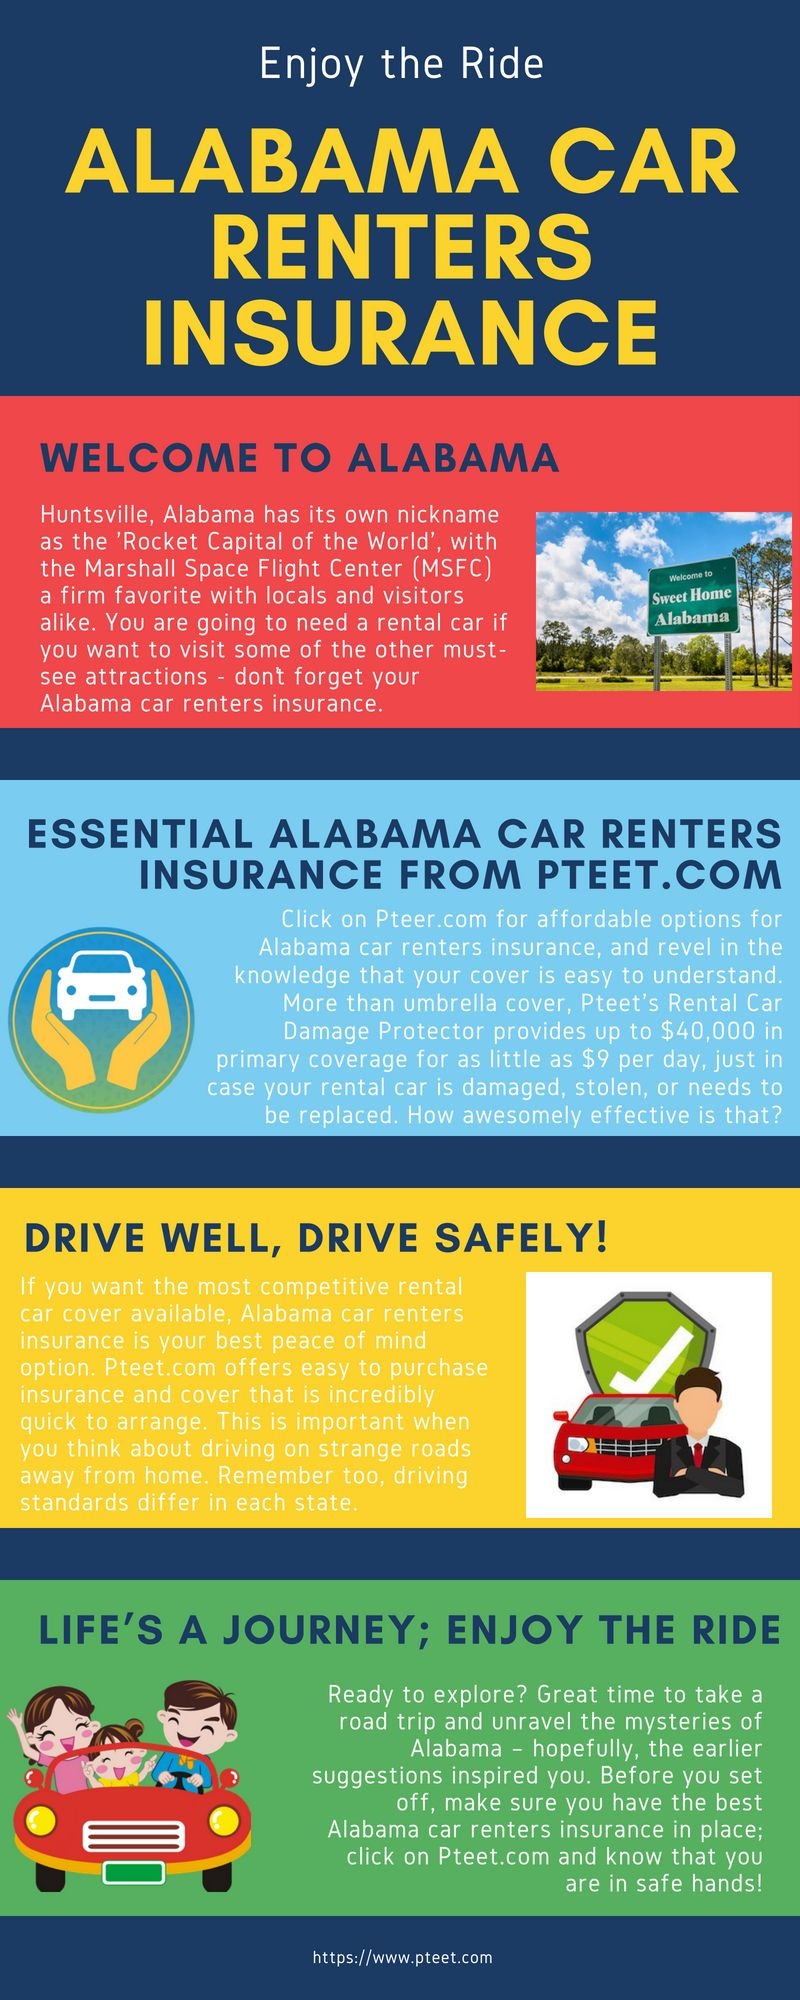 Find the most competitive alabama car renters insurance at